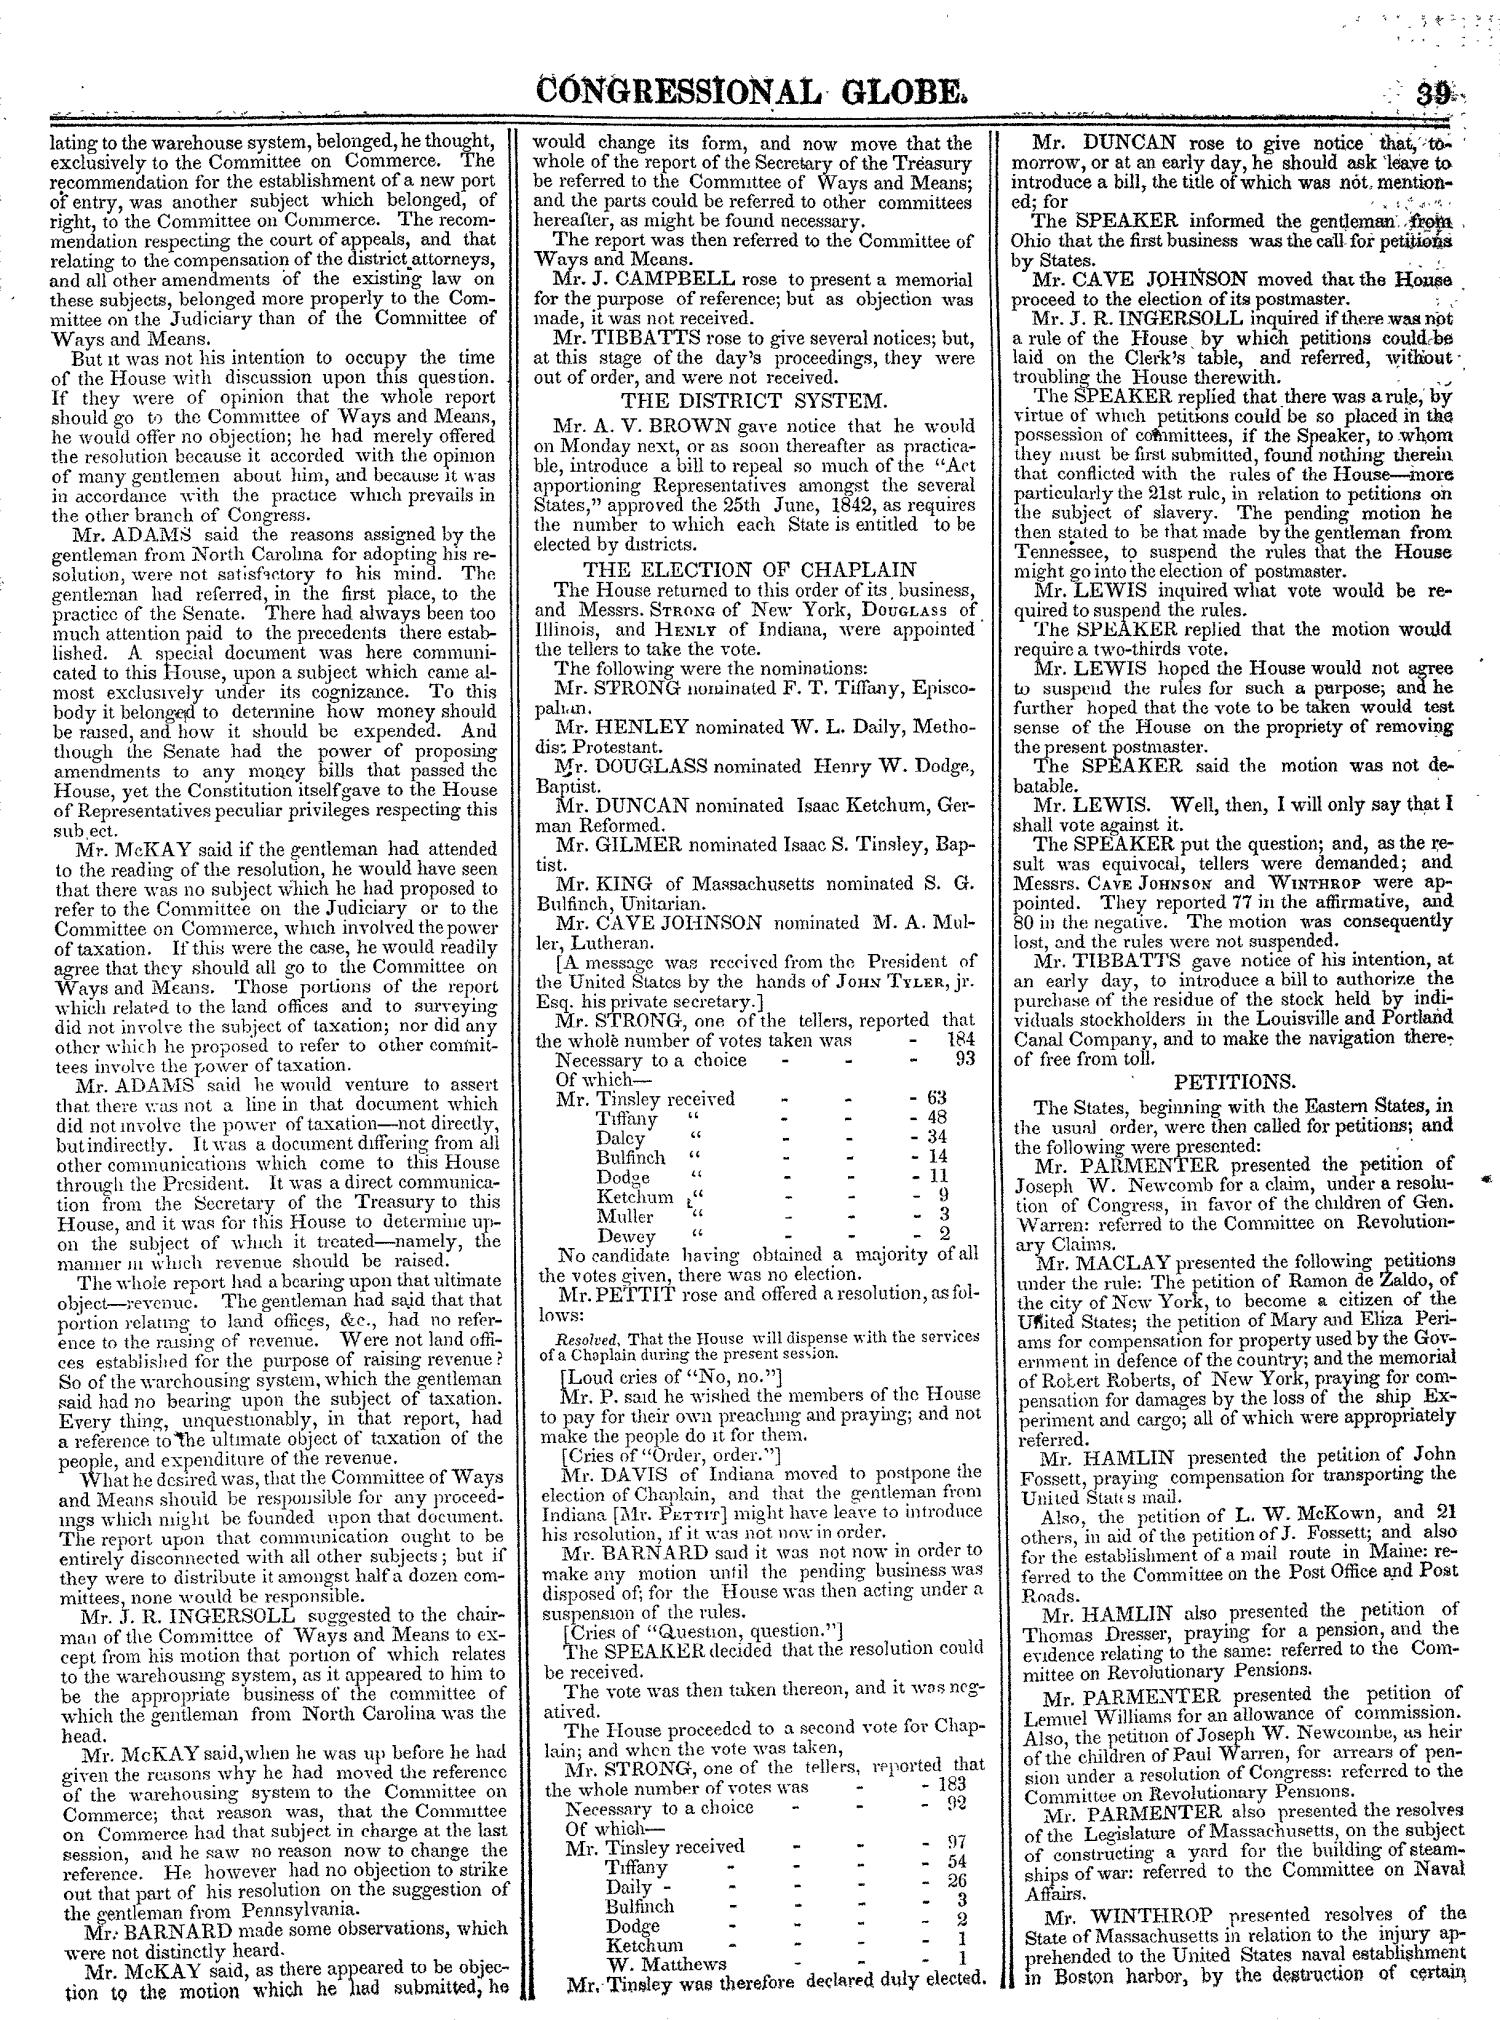 The Congressional Globe, Volume 13, Part 1: Twenty-Eighth Congress, First Session                                                                                                      39